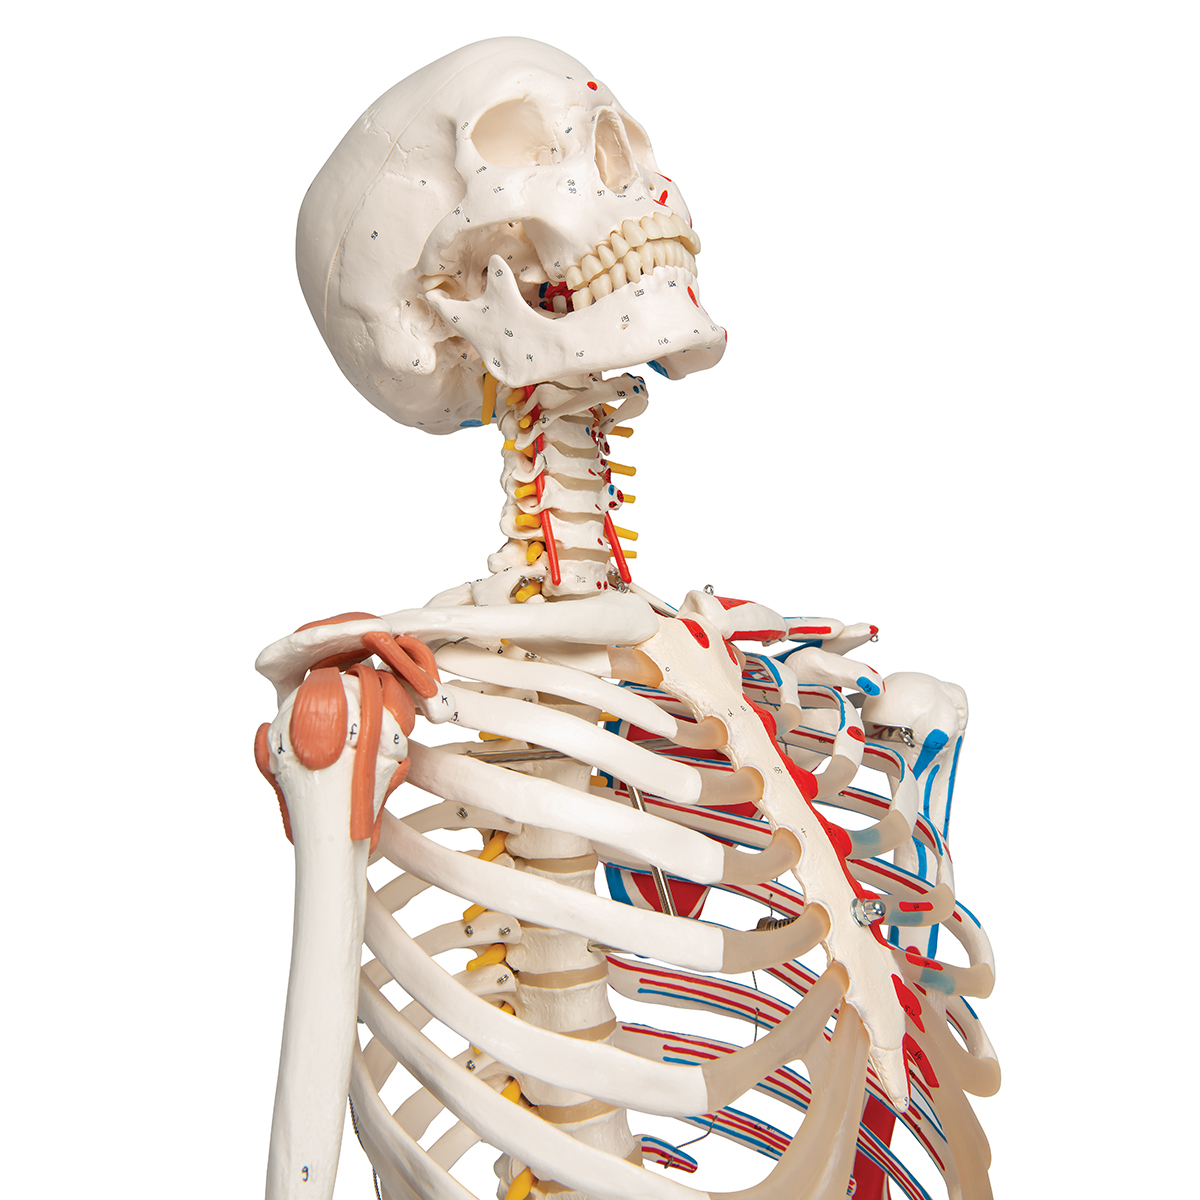 Human Skeleton Model Labeled Skeleton model with muscles